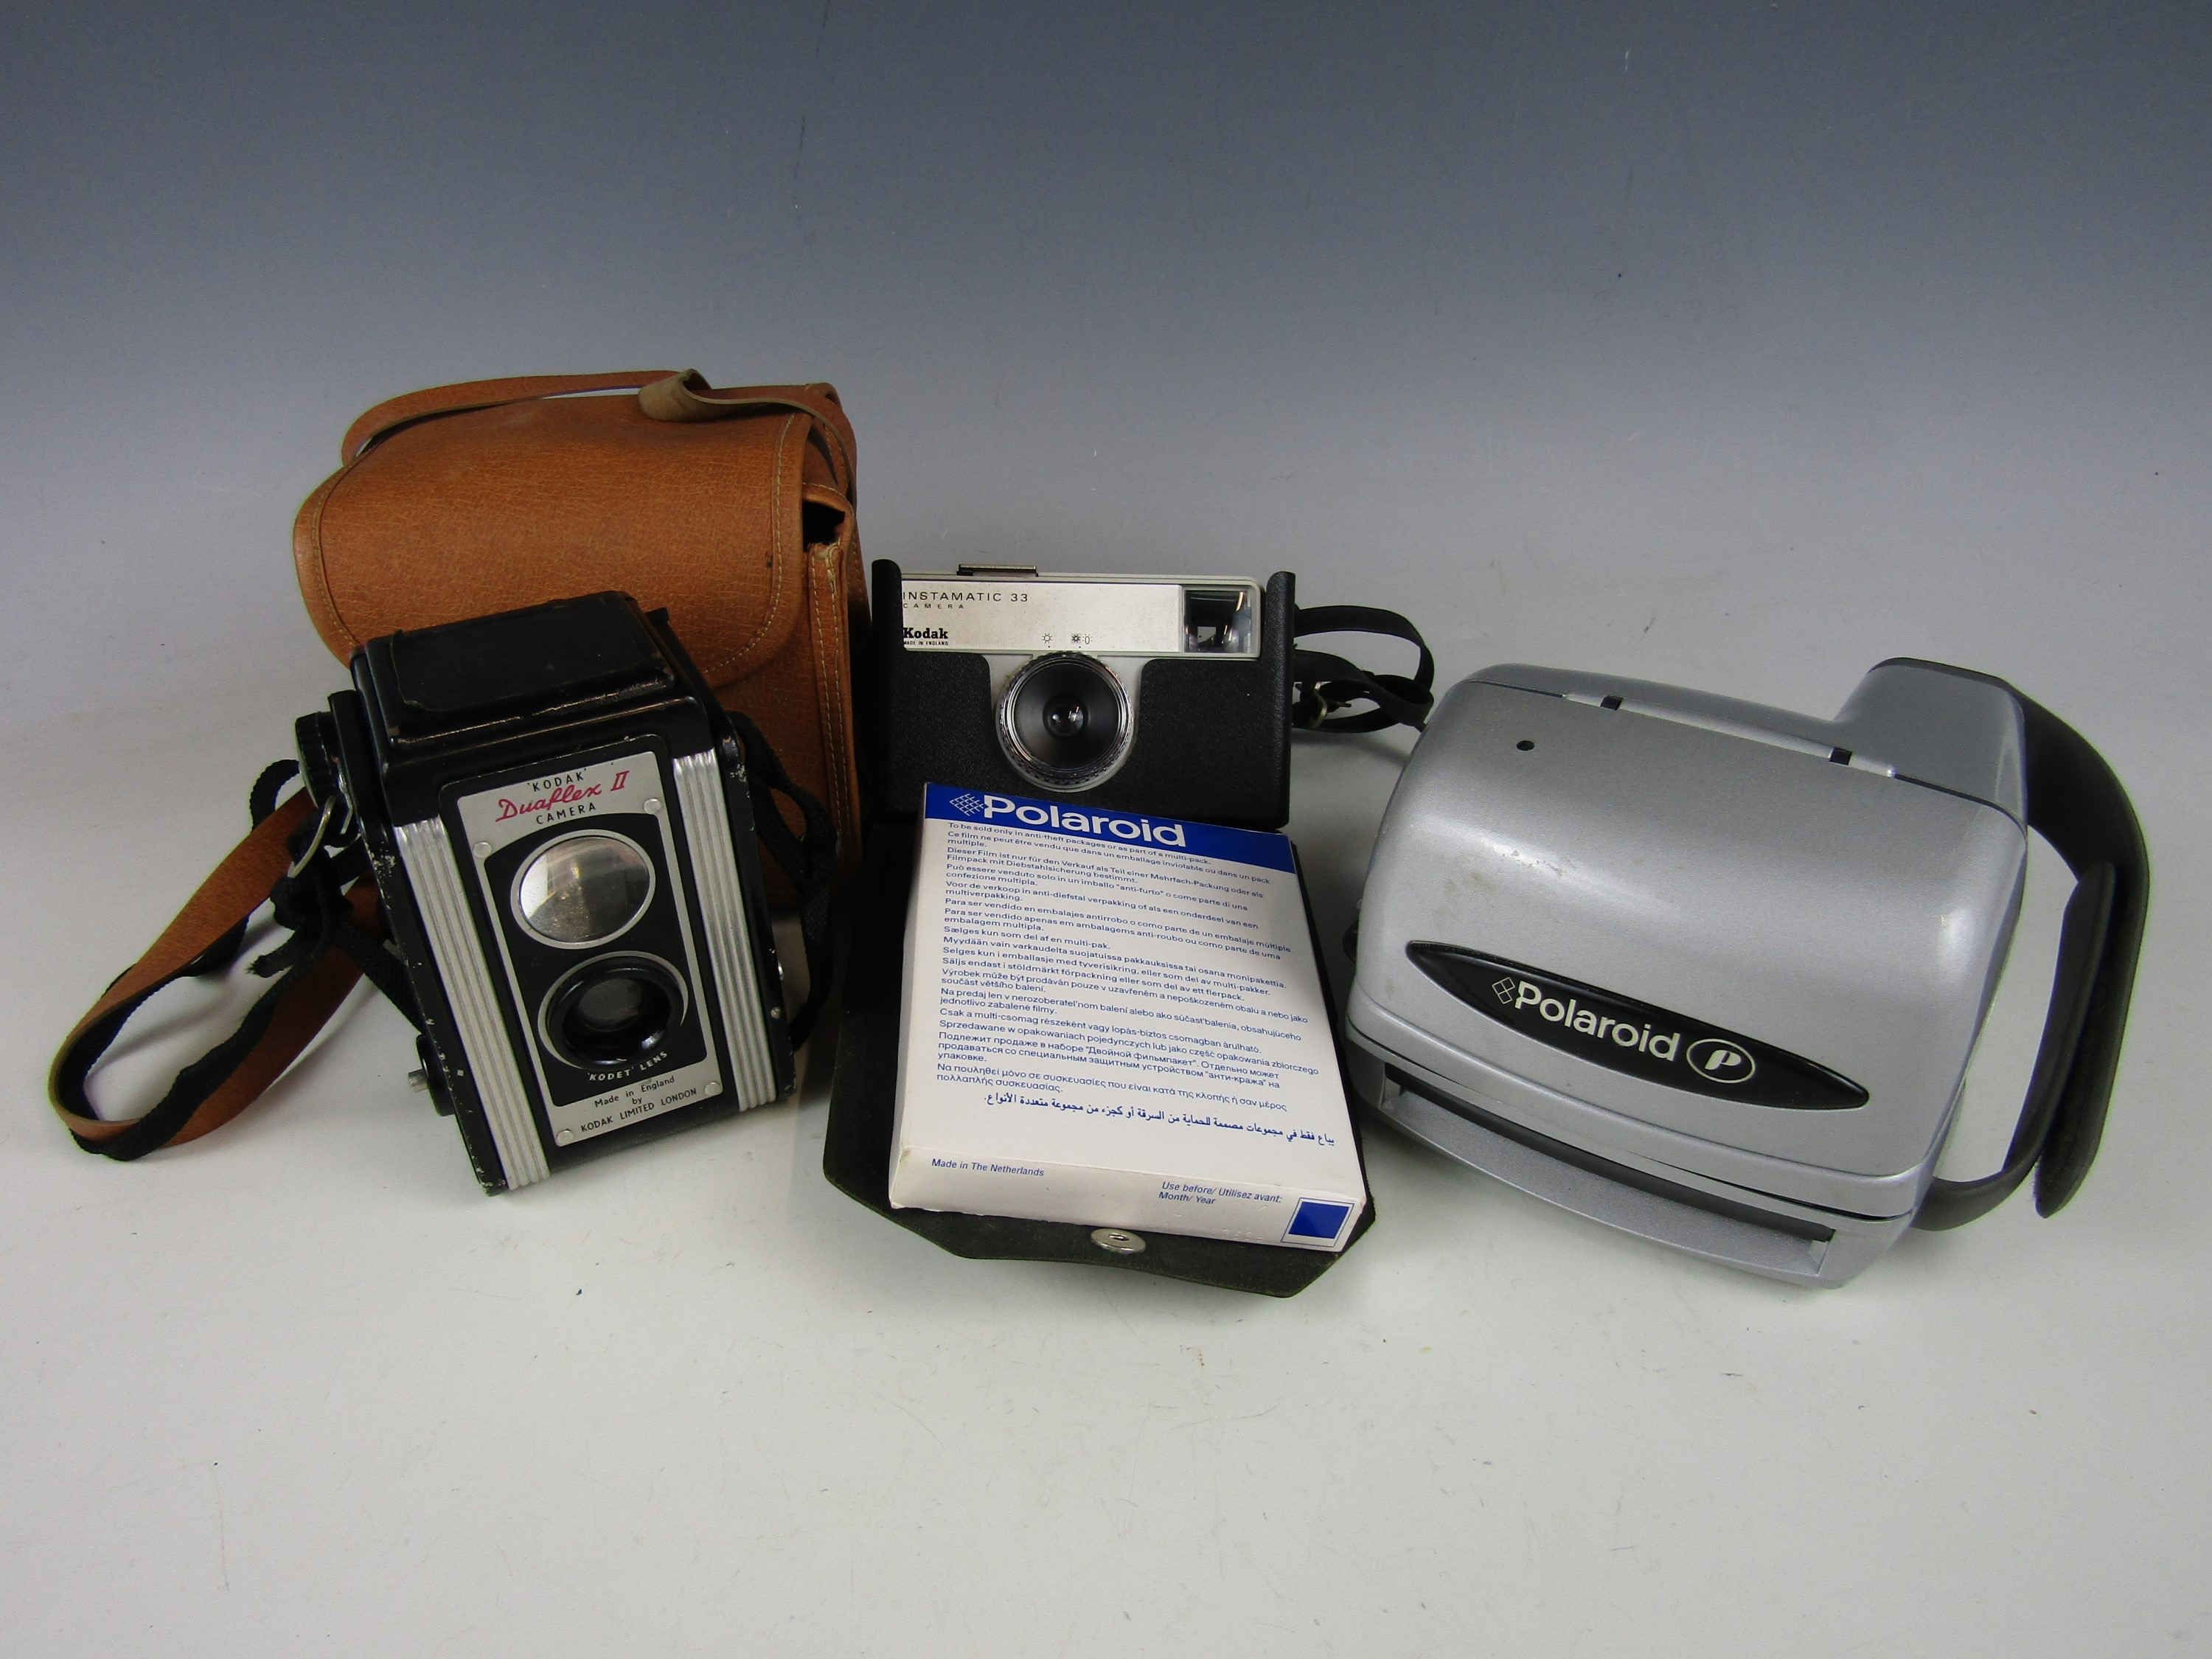 A vintage Polaroid camera together with other cameras